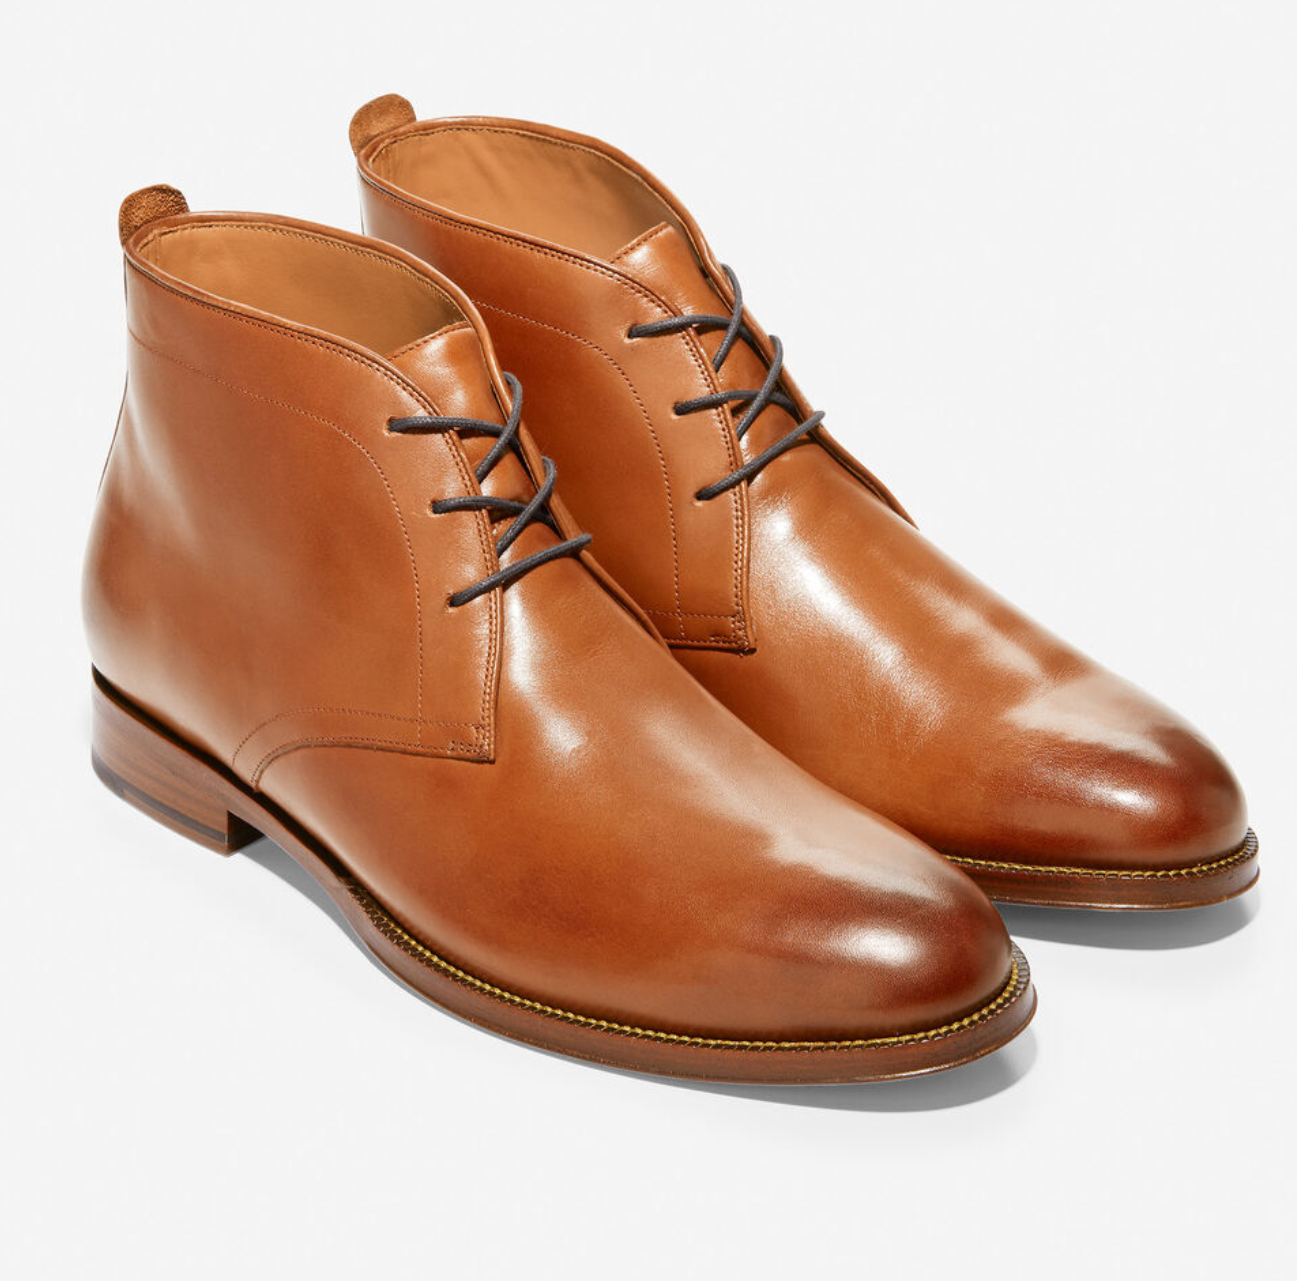 Cole Hann: Up to 60% Off Sale Styles